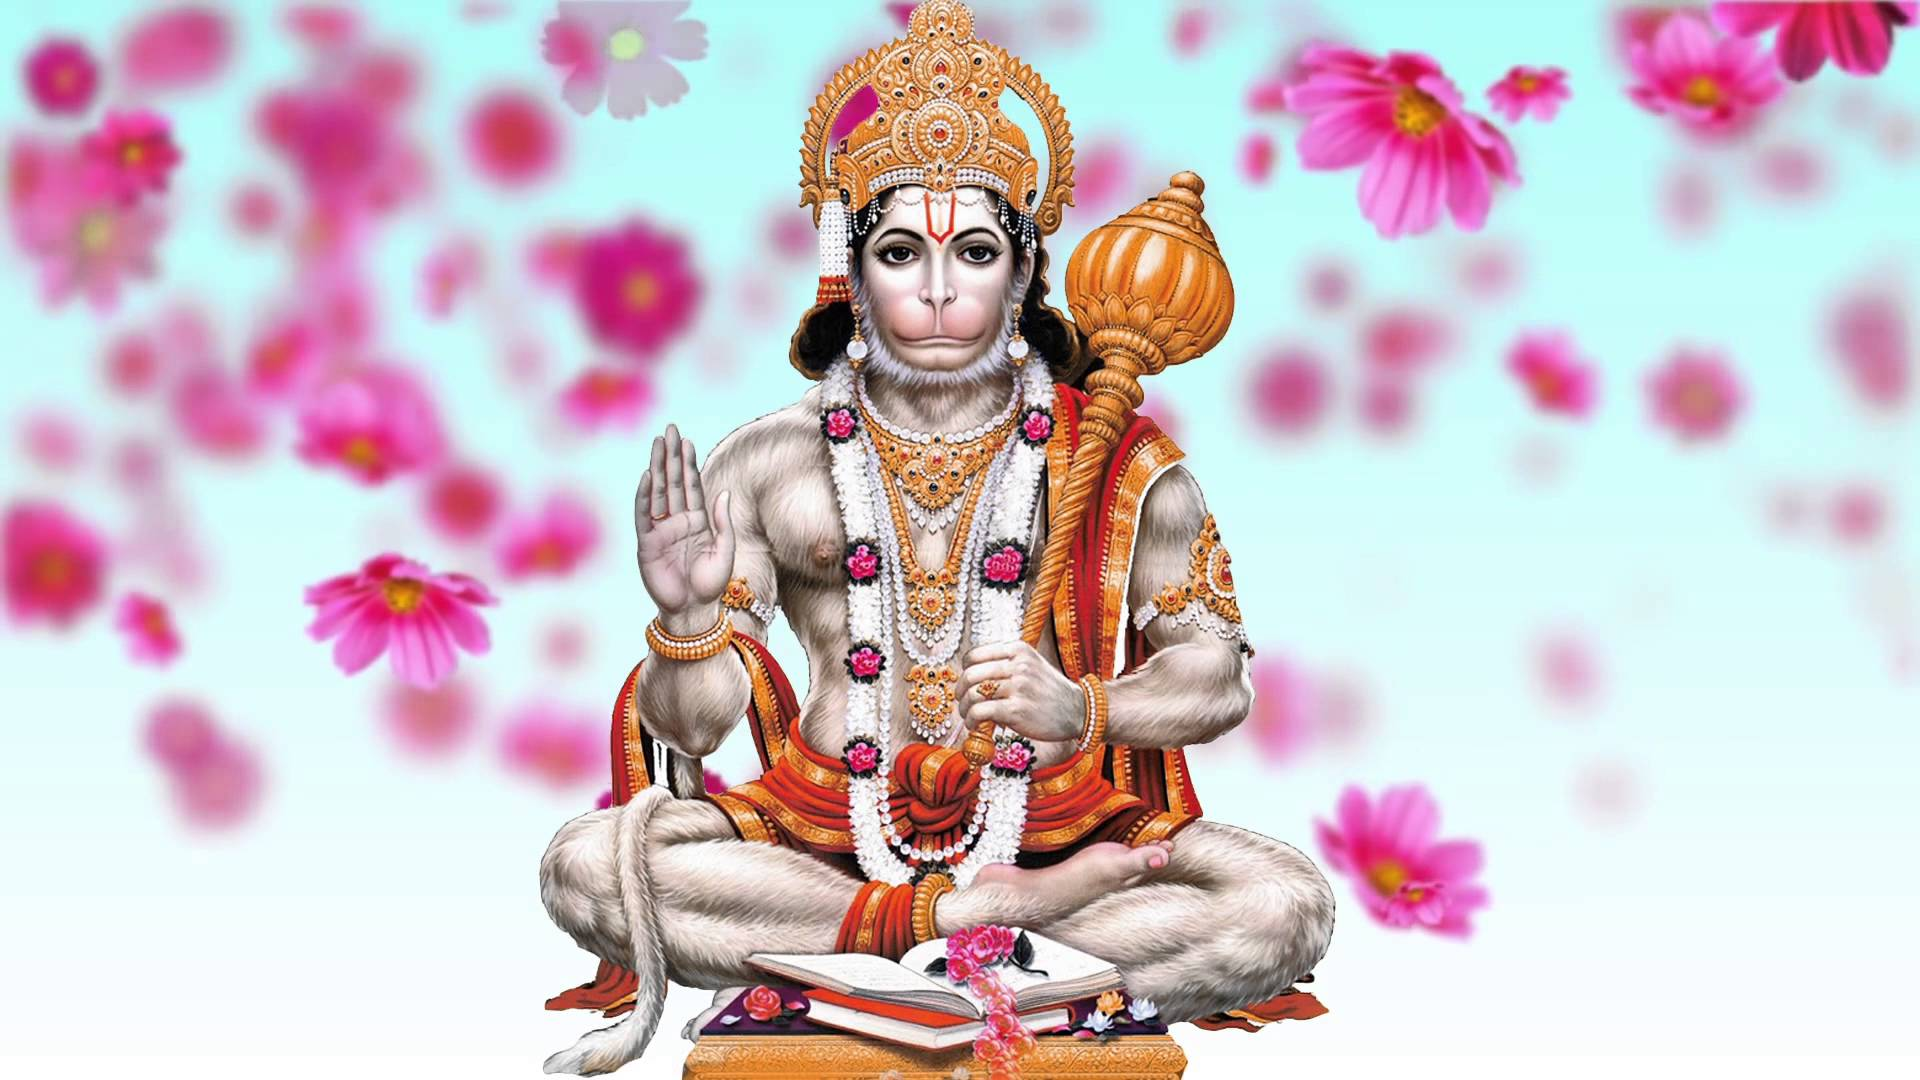 Hanuman Ji Images Photos of Hanuman Ji in HD